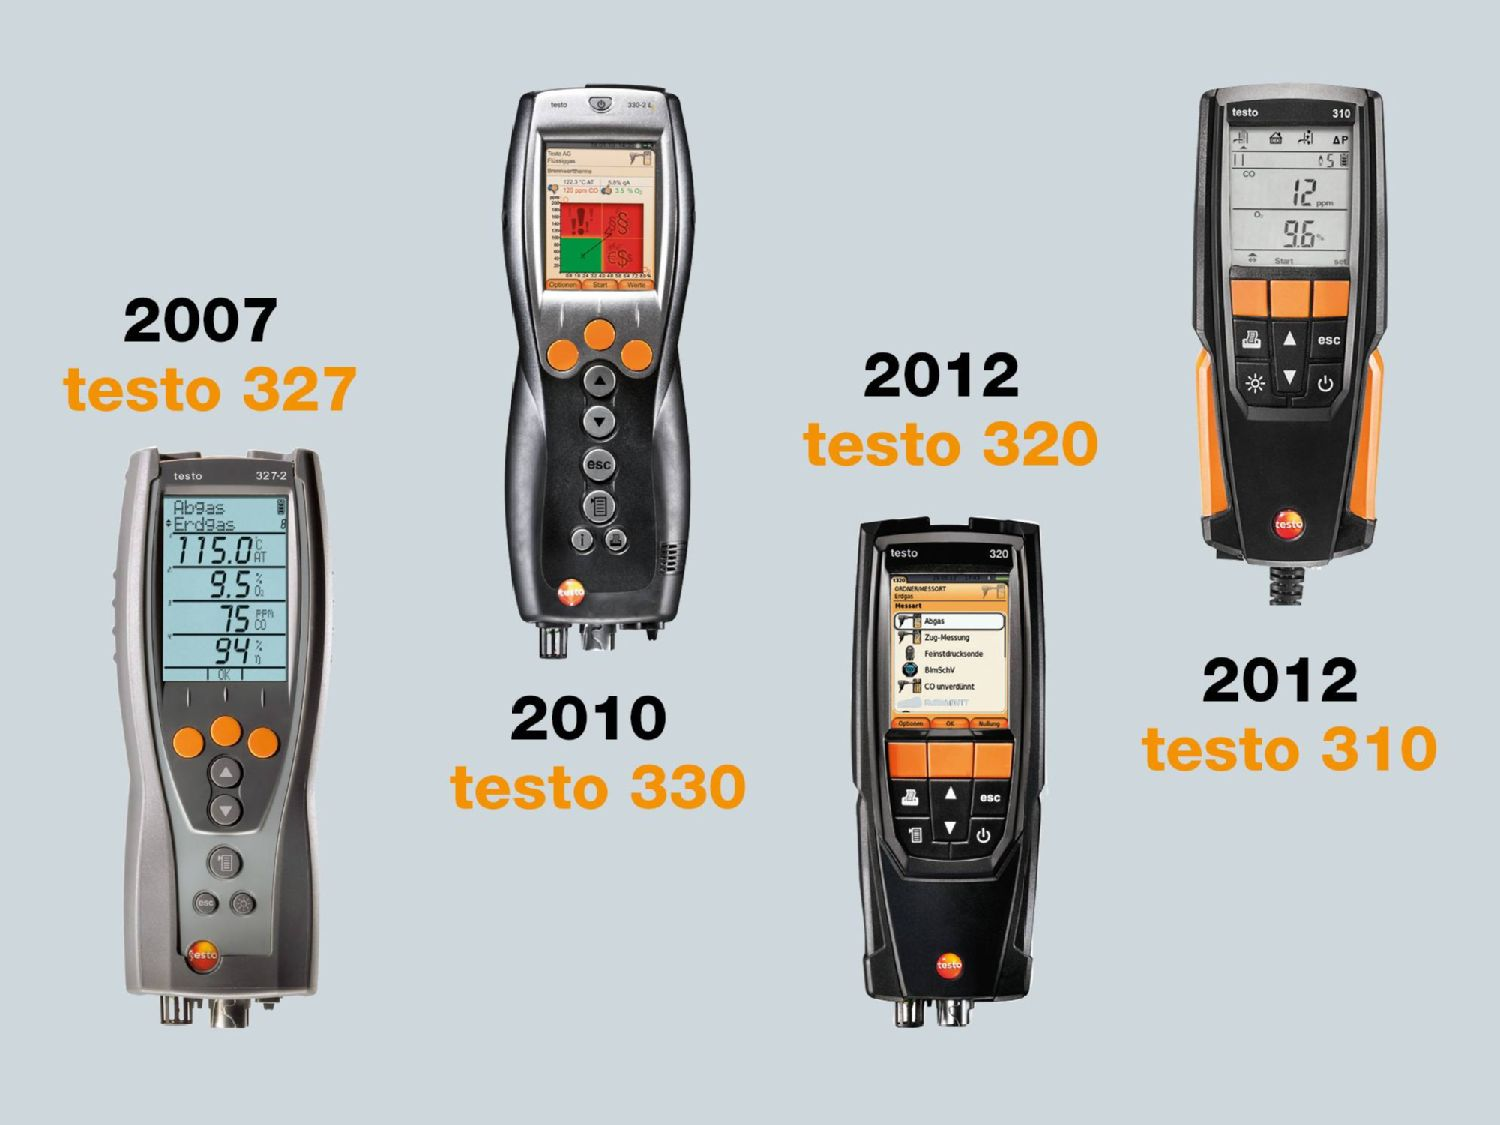 testo flue gas analyzers 2007-2012